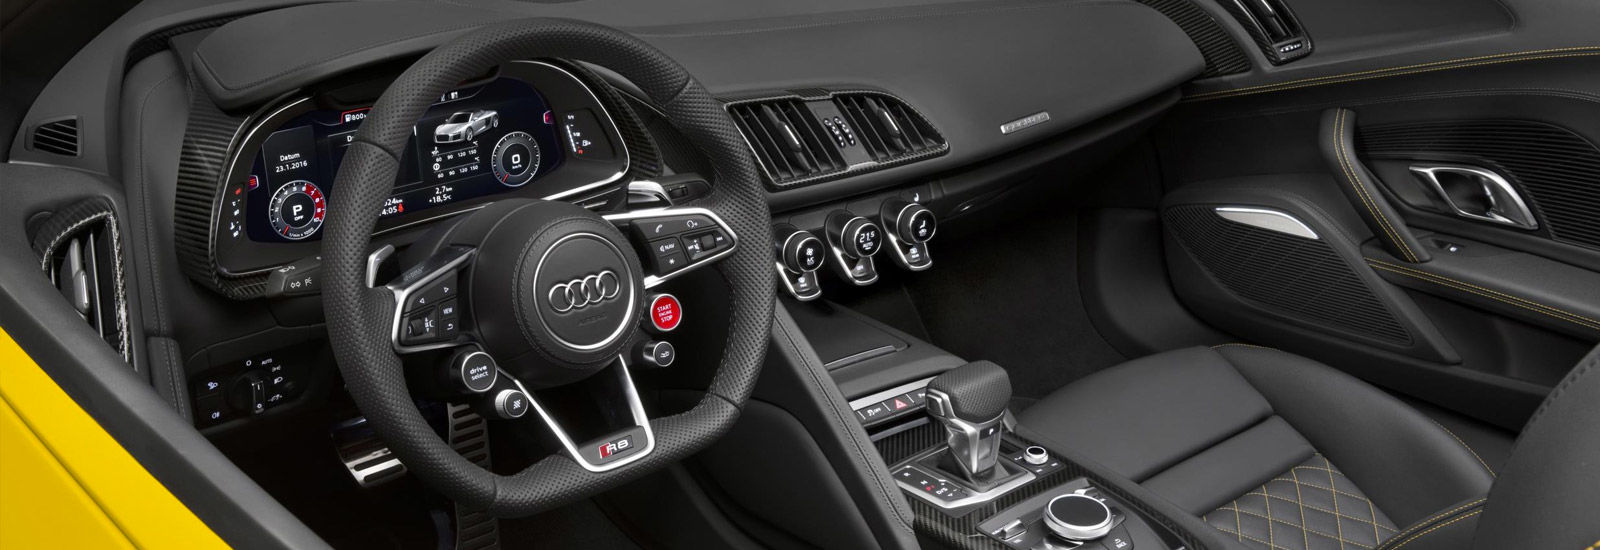 Audi R V Spyder Price Specs And Release Date Carwow - Price of audi r8